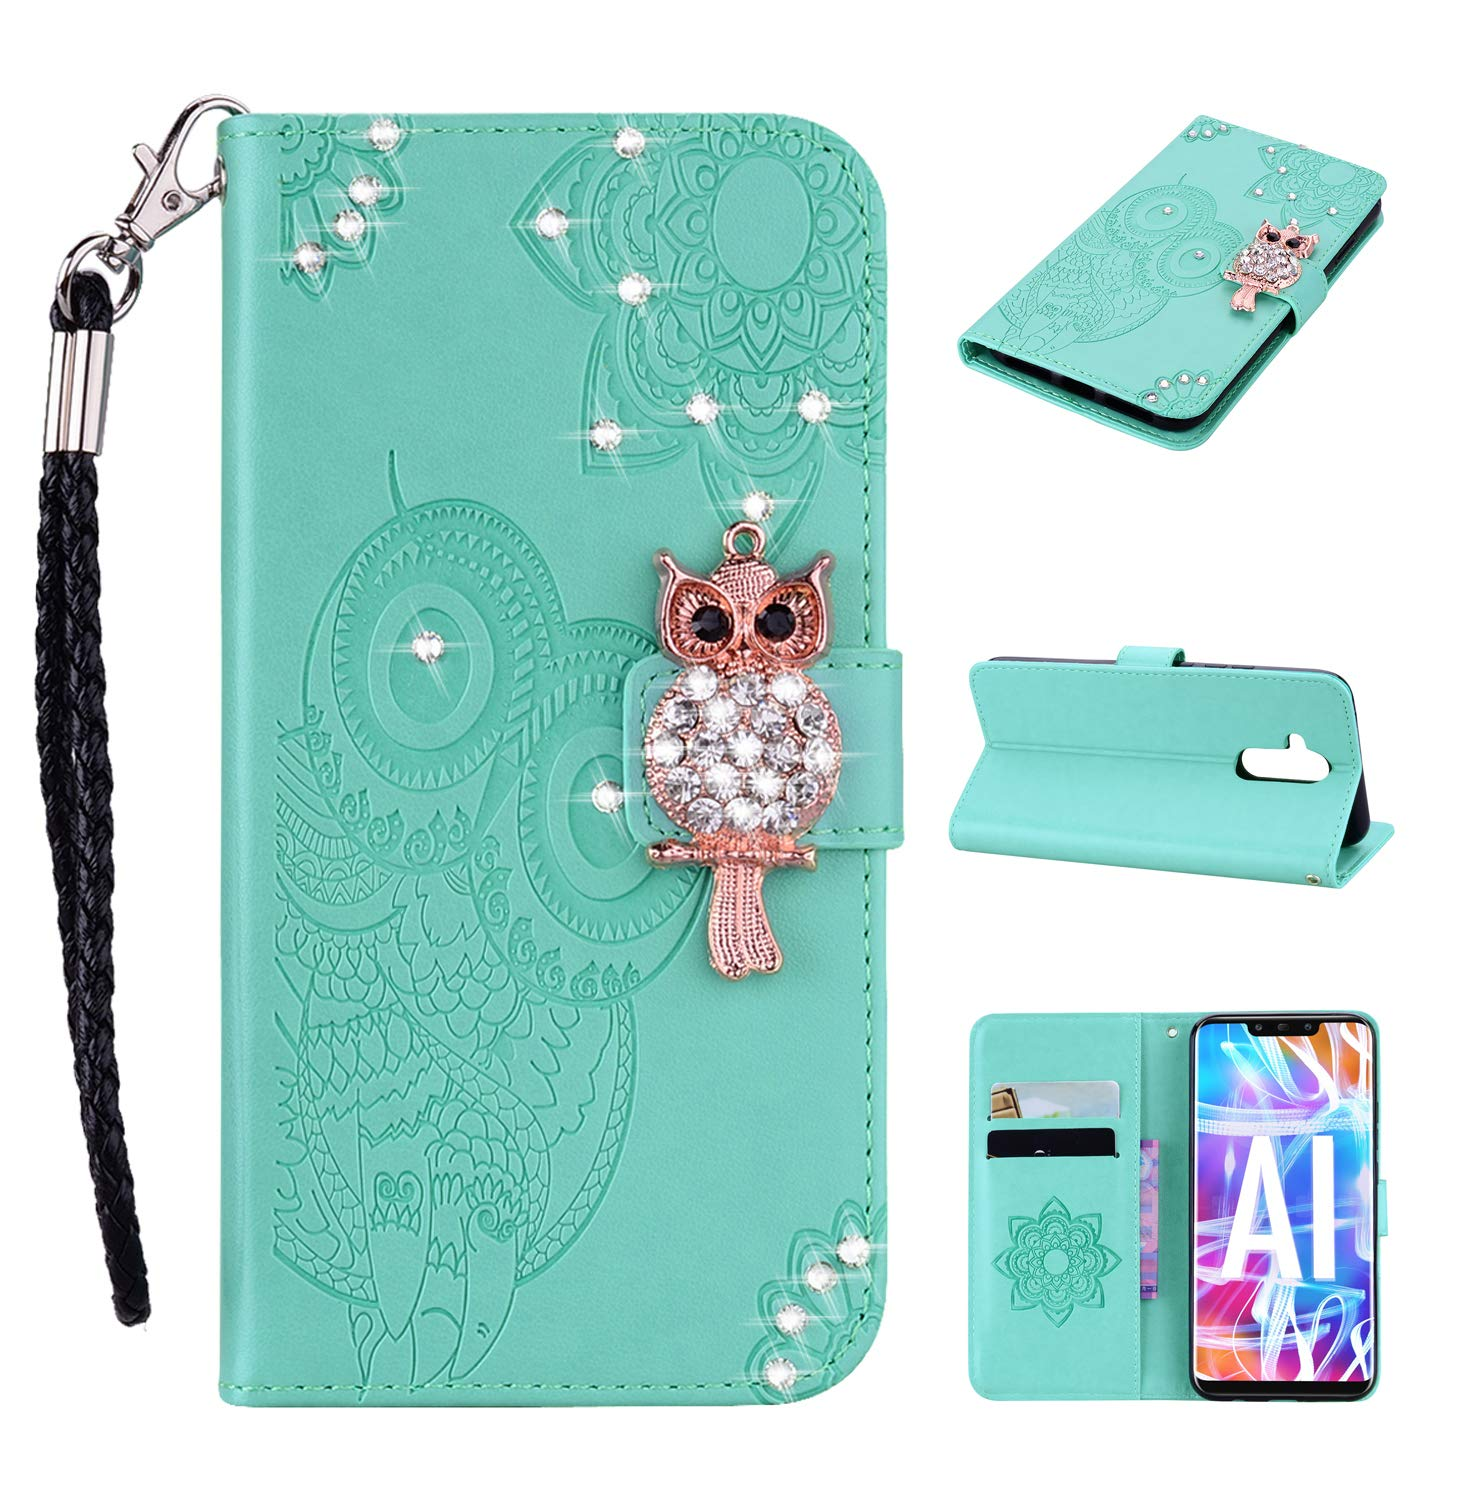 Amocase Wallet Case with 2 in 1 Stylus for Huawei Mate 20 Lite,3D Bling Gems Owl Magnetic Mandala Embossing Premium Strap PU Leather Card Slot Stand Case for Huawei Mate 20 Lite - Mint Green by Amocase